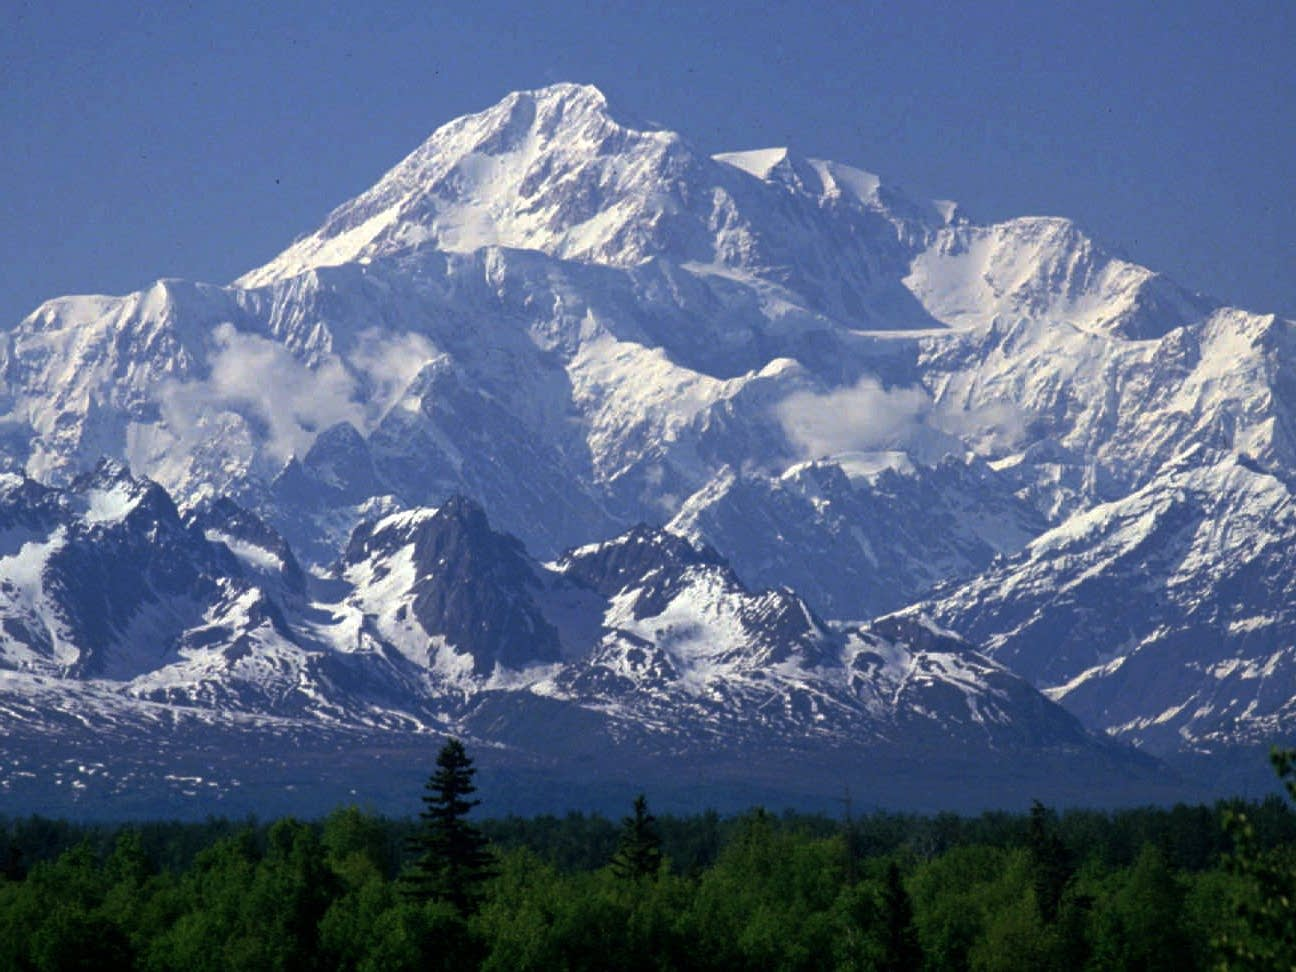 Mt. McKinley will once again be Denali.